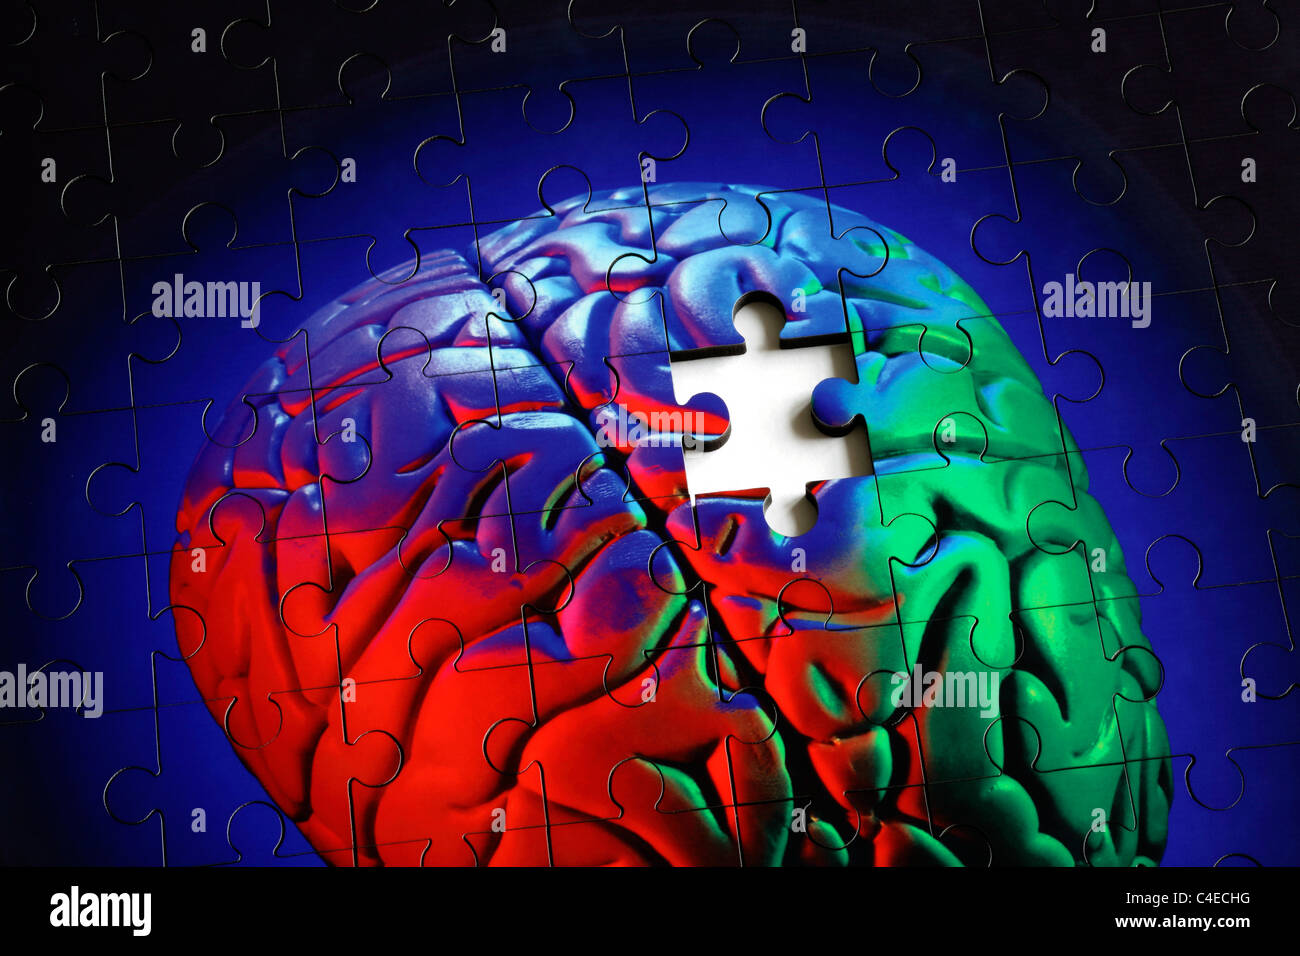 Piece missing from a jigsaw puzzle made from a photo of a human (model) brain. - Stock Image